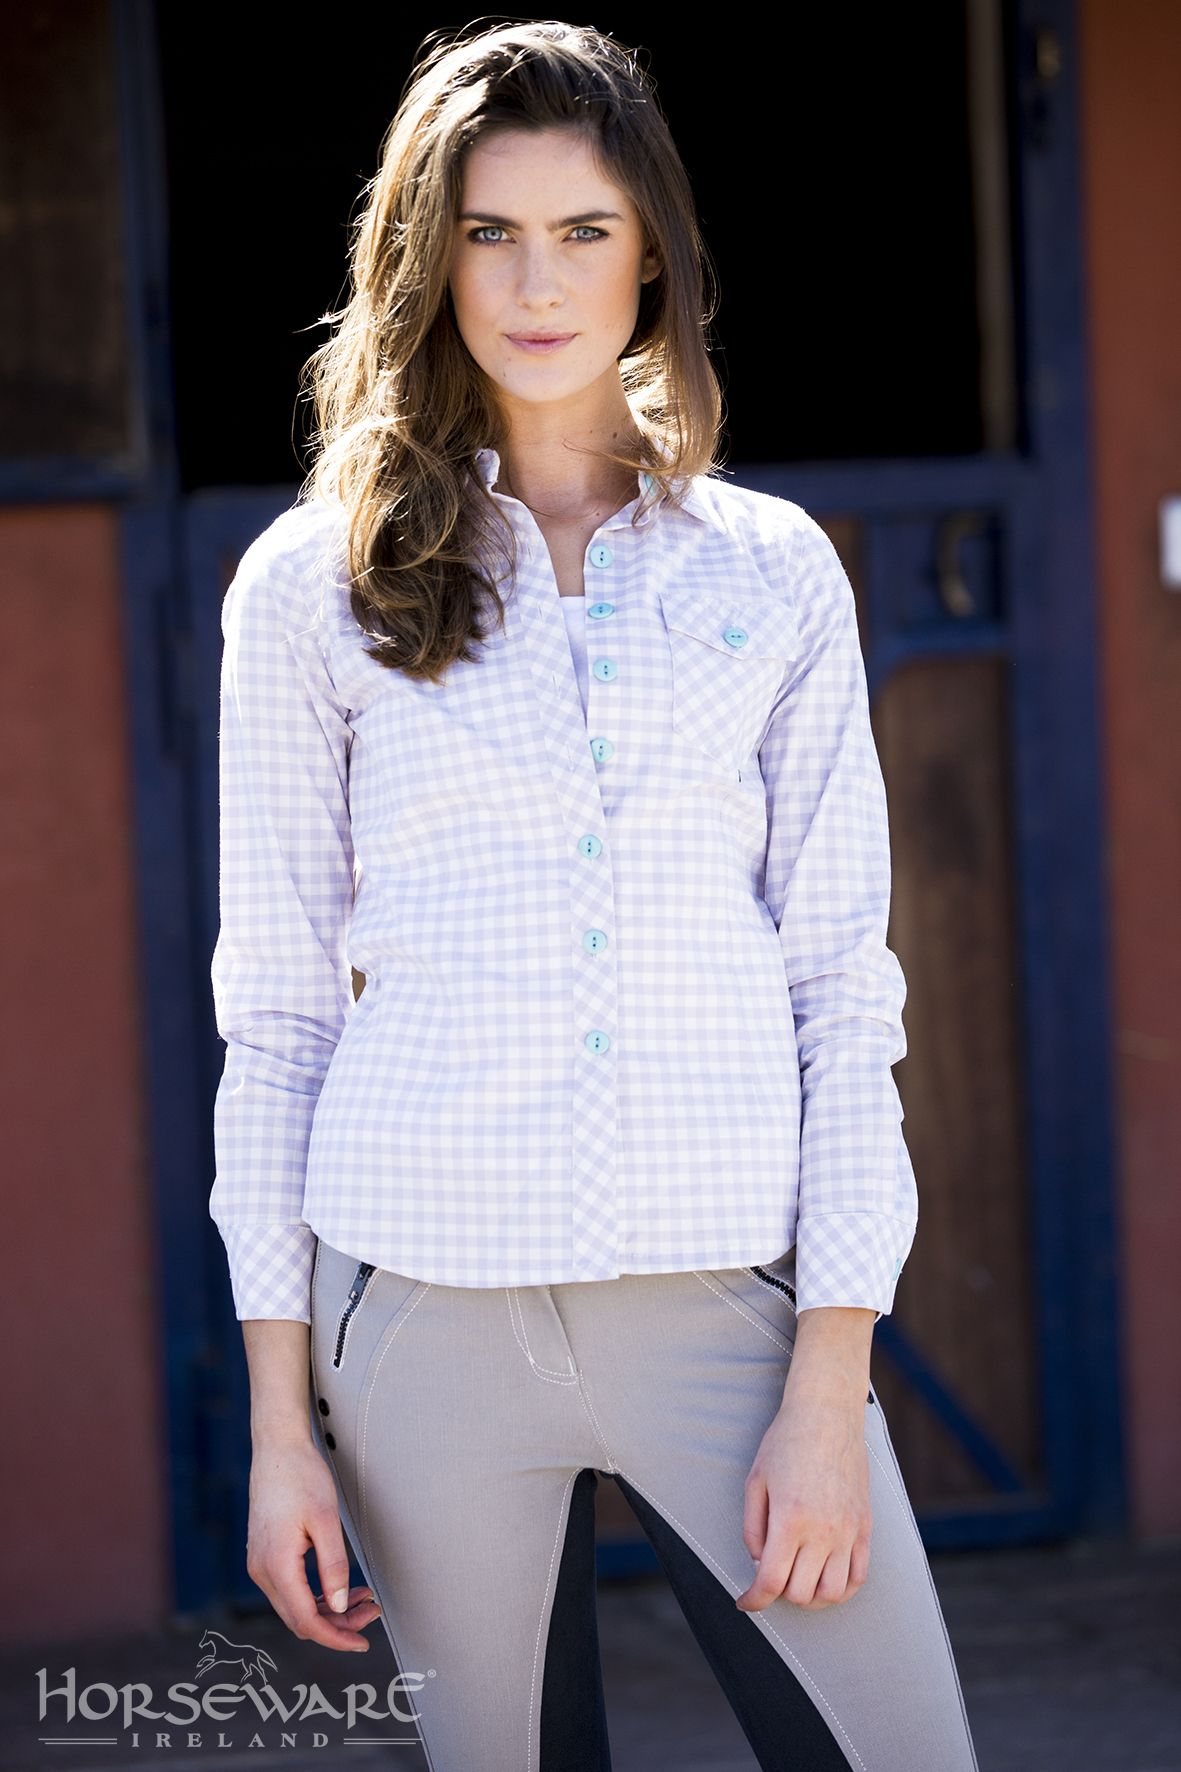 90b35b973a7 Horseware Ladies Collection S S15  Nola cotton check shirt